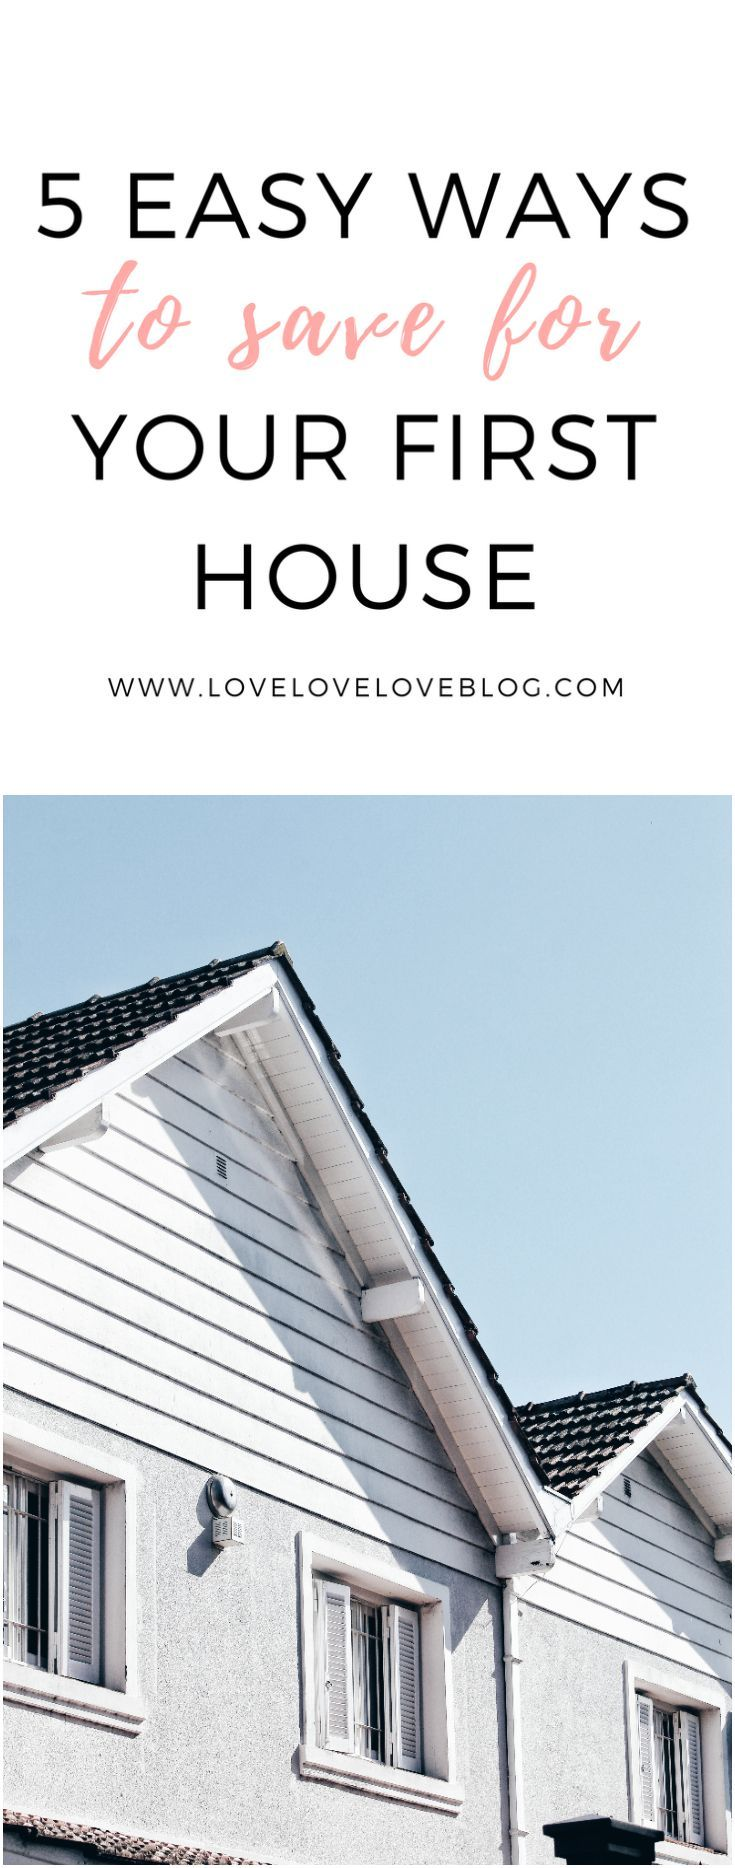 How To Become A Homeowner 5 Easy Ways To Save Love Love Love House Down Payment Ways To Save Home Buying Tips